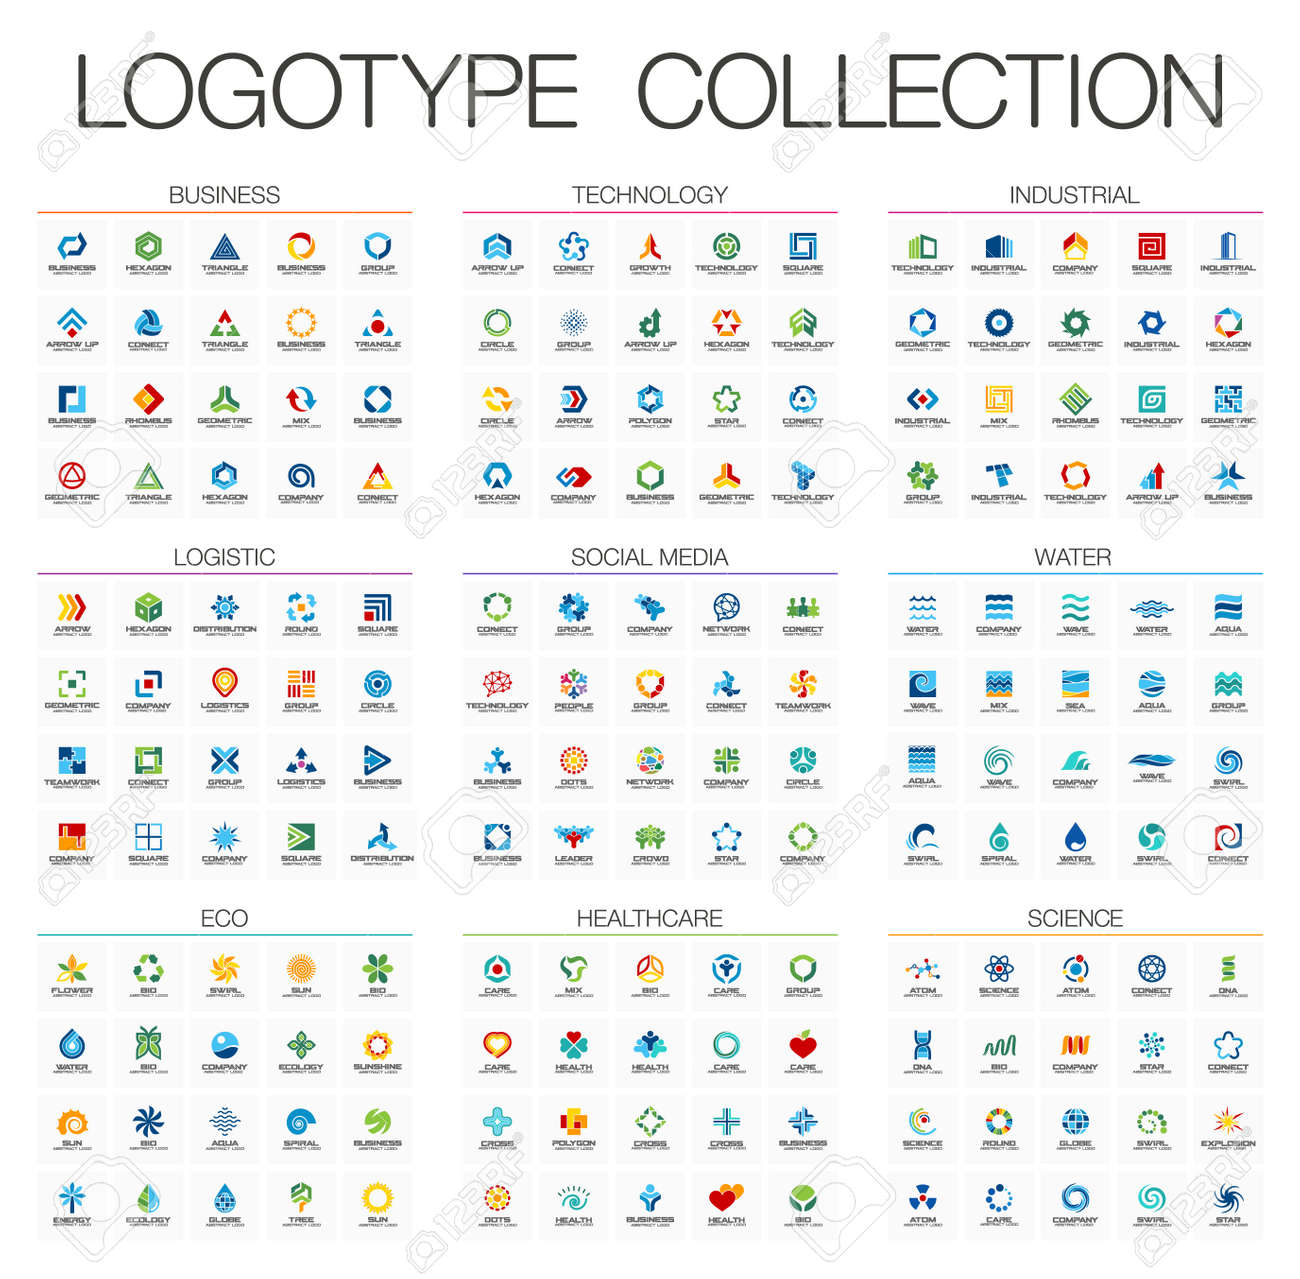 Abstract logo set for business company. Corporate identity design elements. Technology, Eco, Science, Healthcare concepts. Industrial, Logistic, Social Media Logotype collection. Colorful Vector icons - 60944509